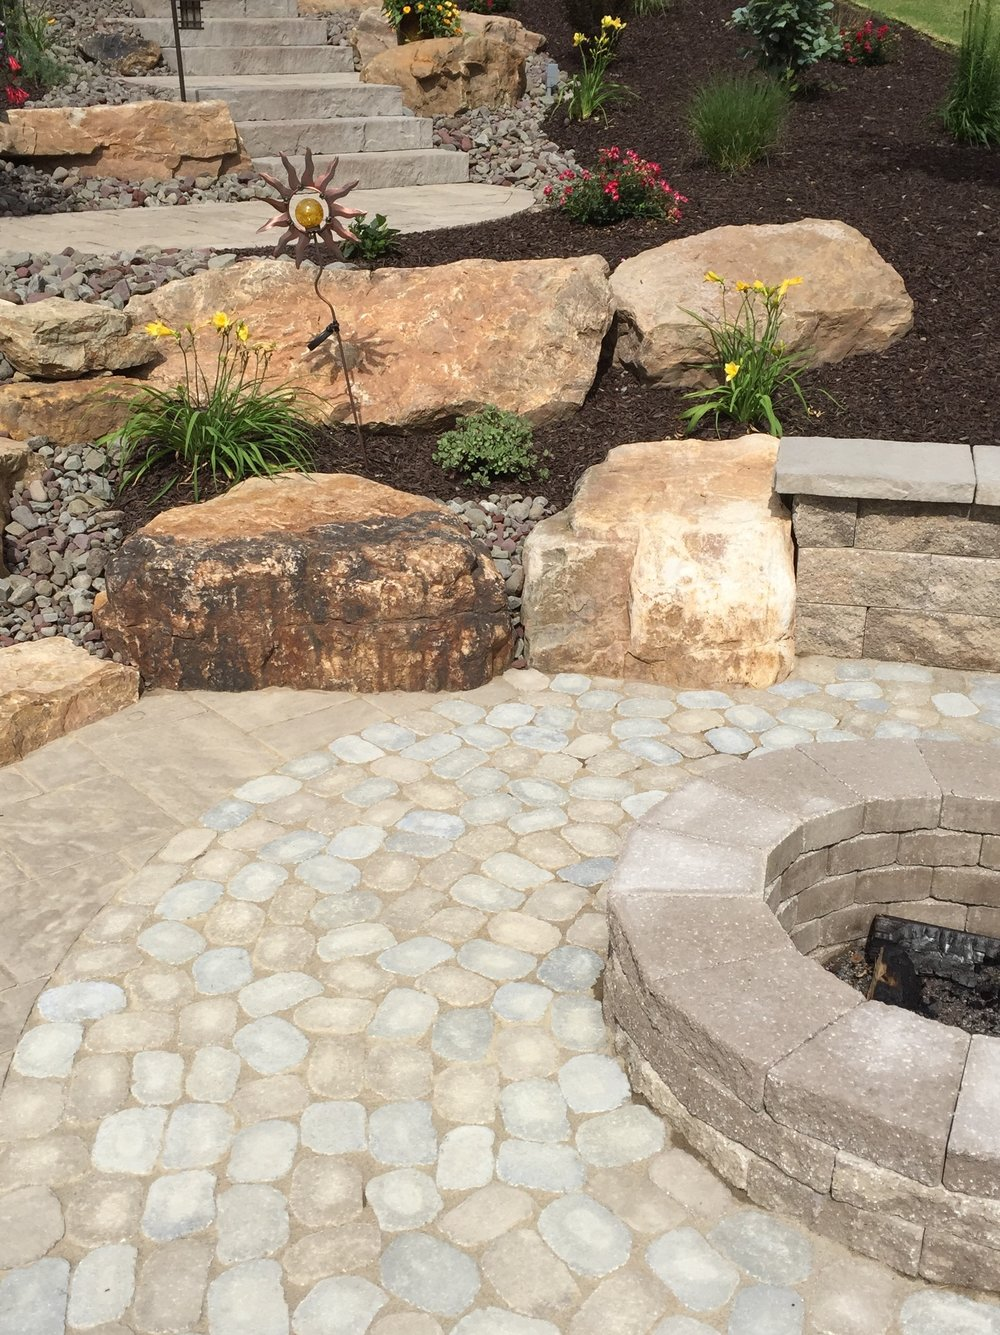 Landscape design ideas with an outdoor fireplace in Exeter, PA